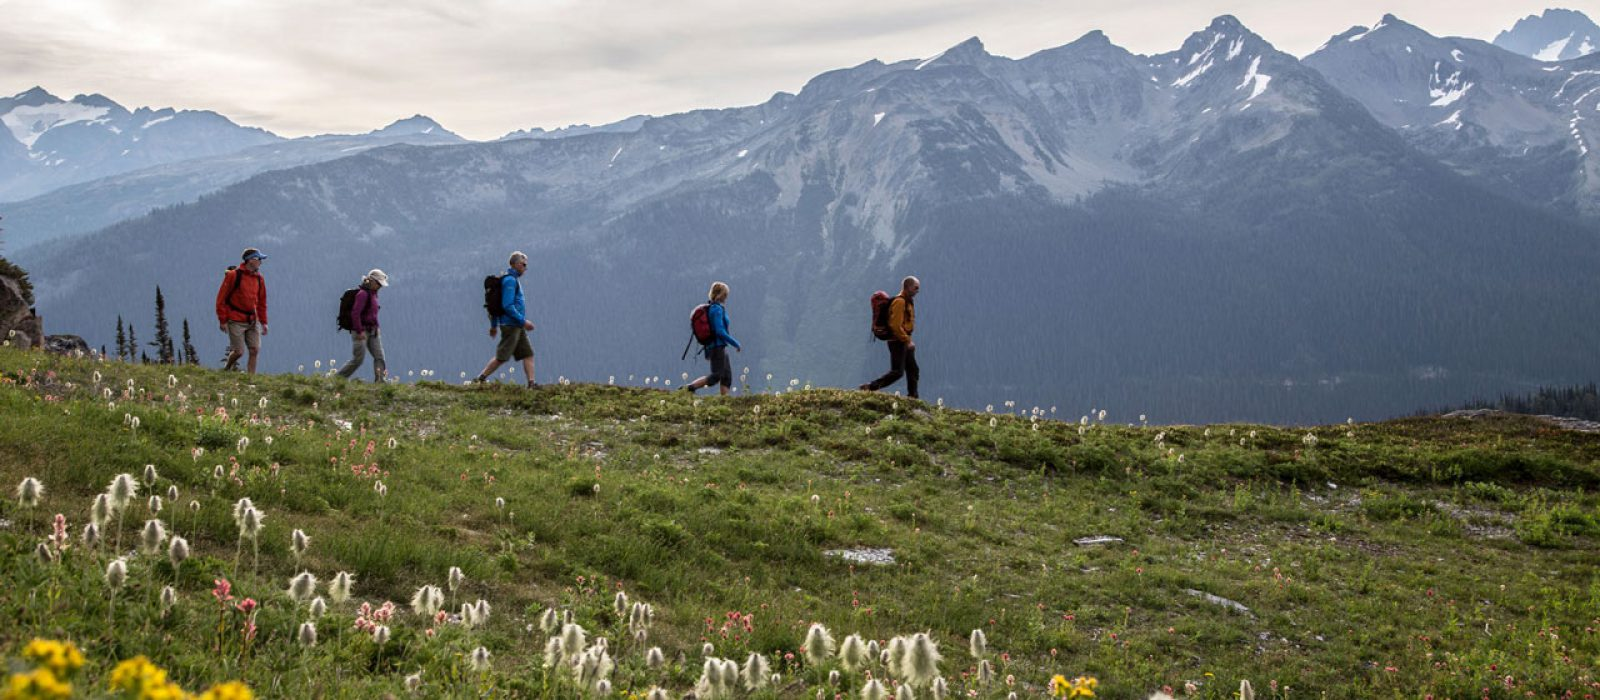 People hiking in the Purcell Mountains in an alpine meadow